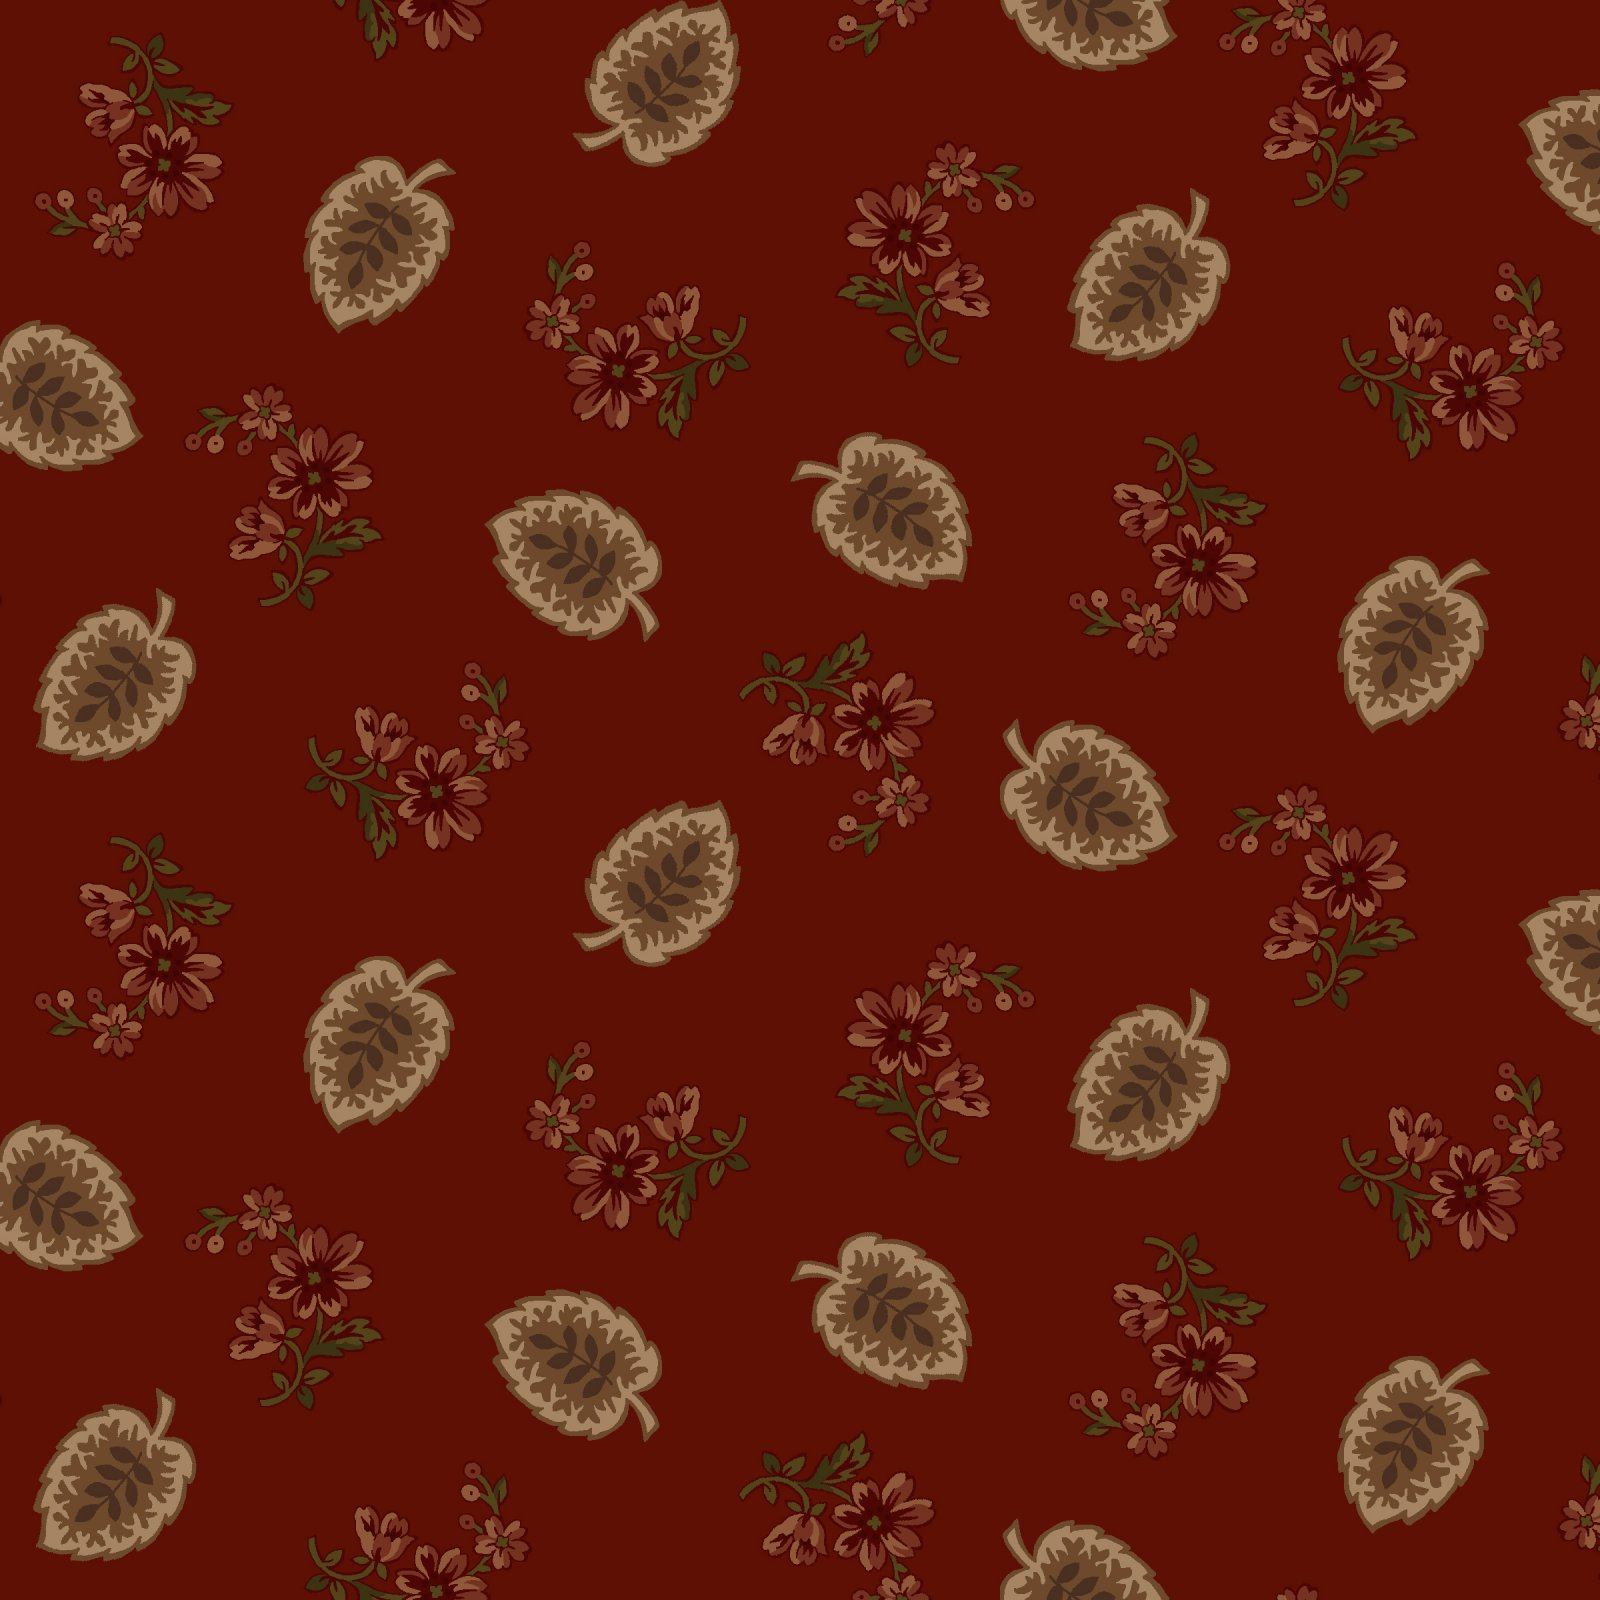 Buttermilk Blossoms  - 2105-88 * 1/2 yard